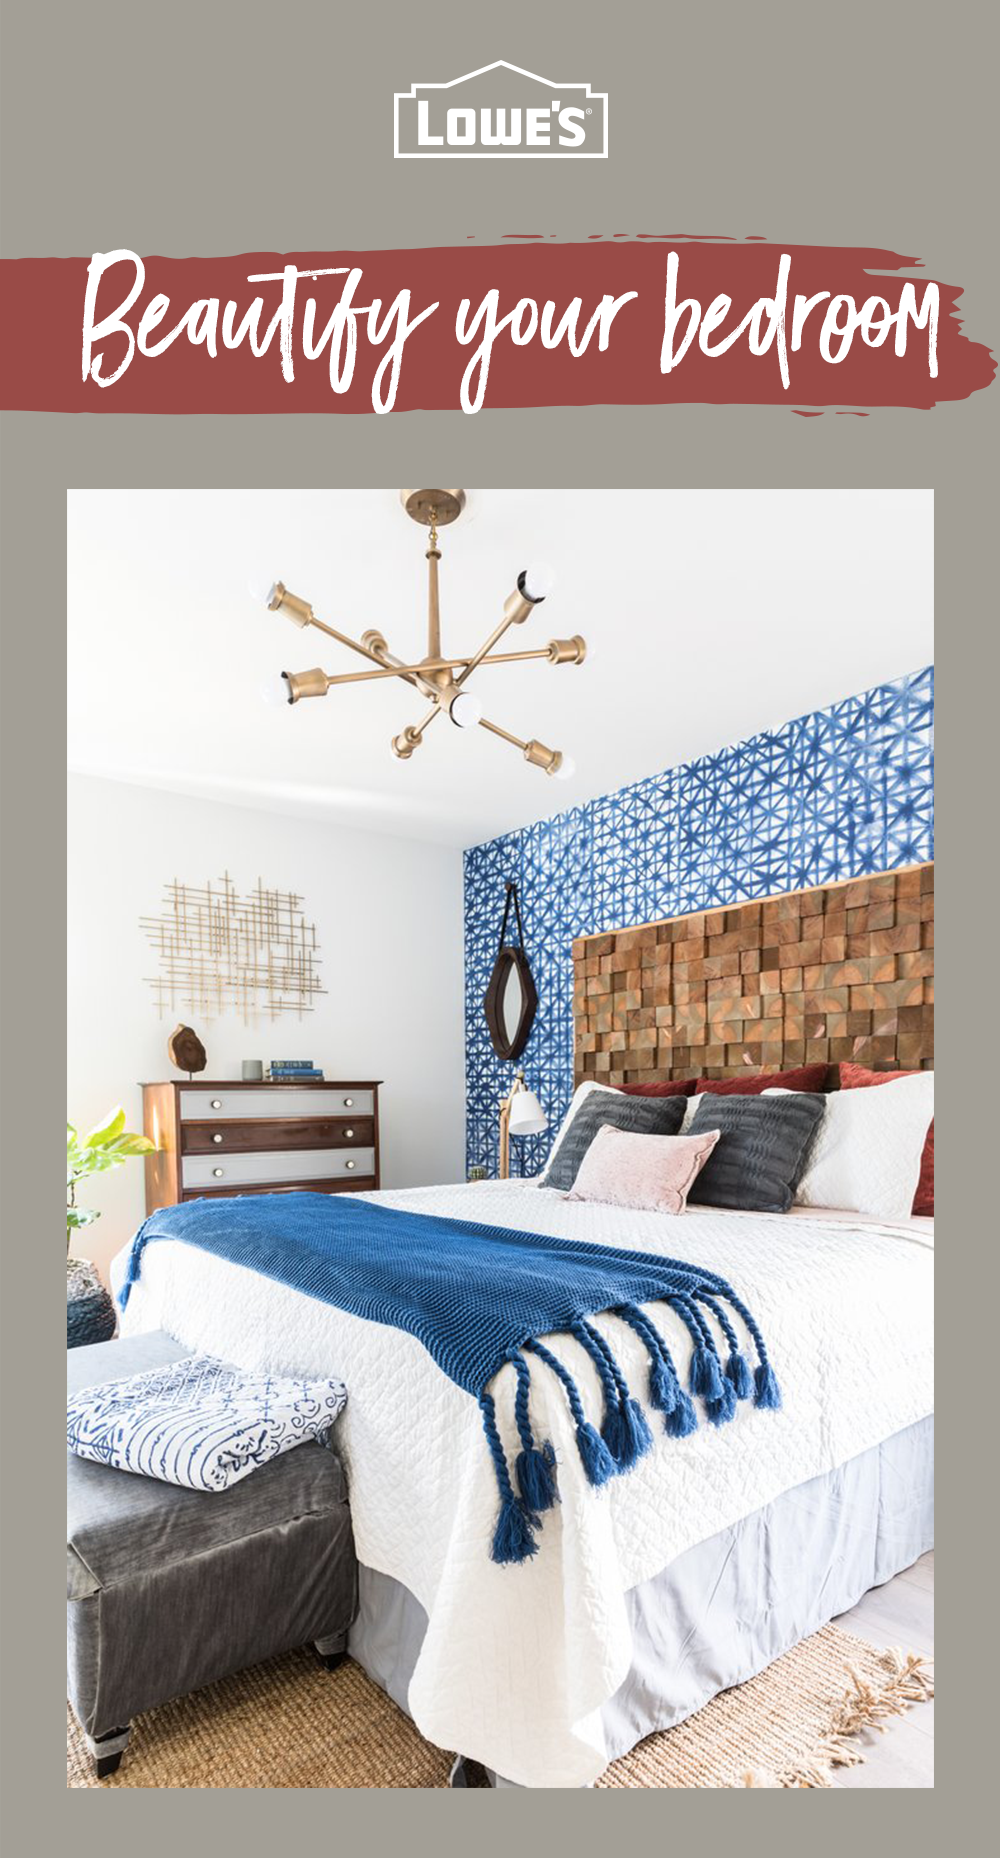 Looking To Beautify Your Bedroom Lowes Com Has Everything You